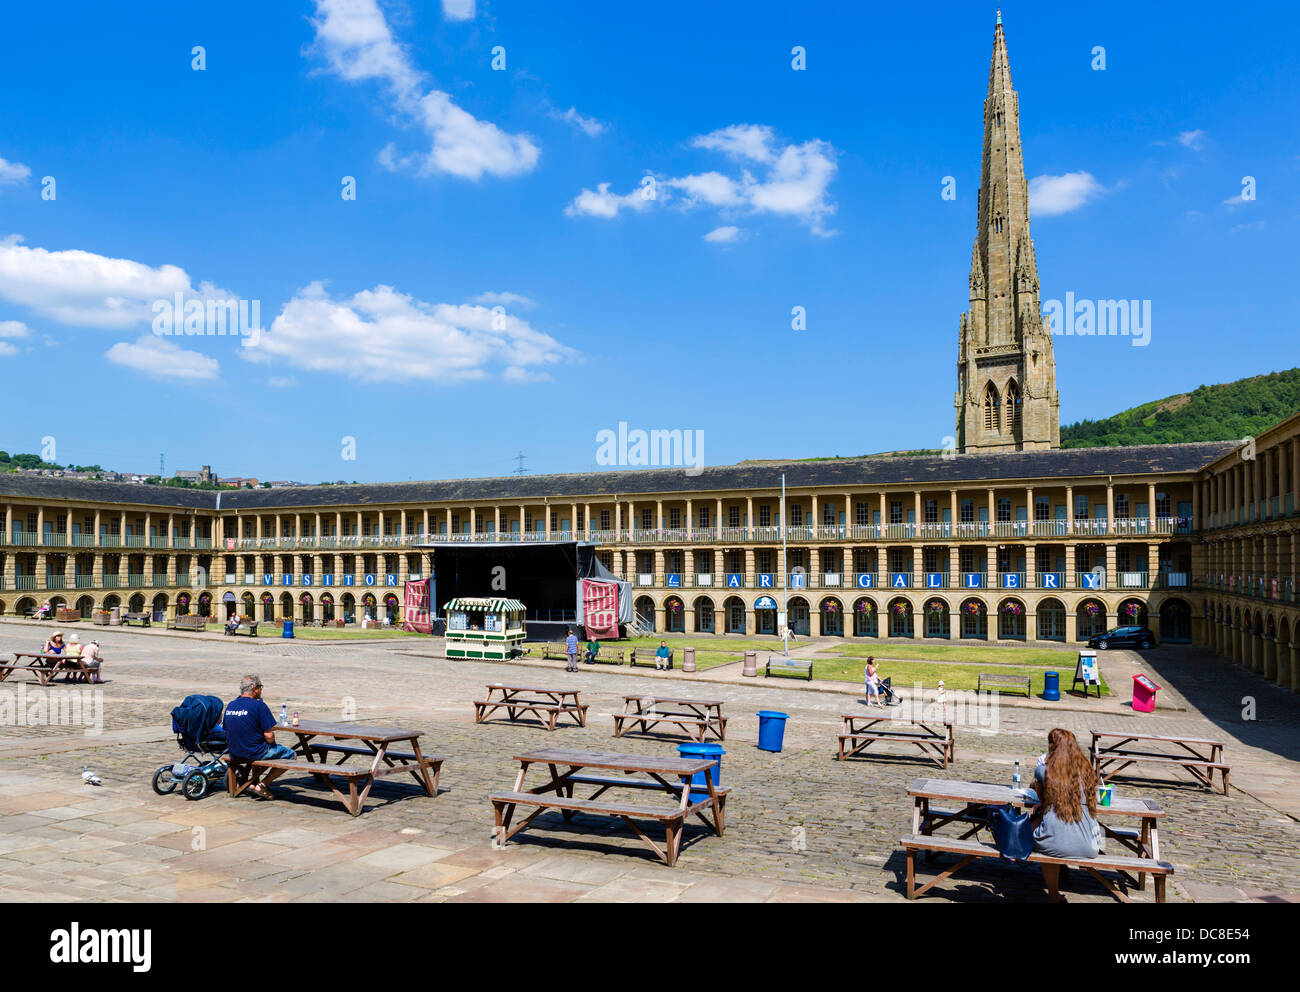 The historic 18thC Piece Hall in the centre of Halifax, West Yorkshire, England, UK - Stock Image